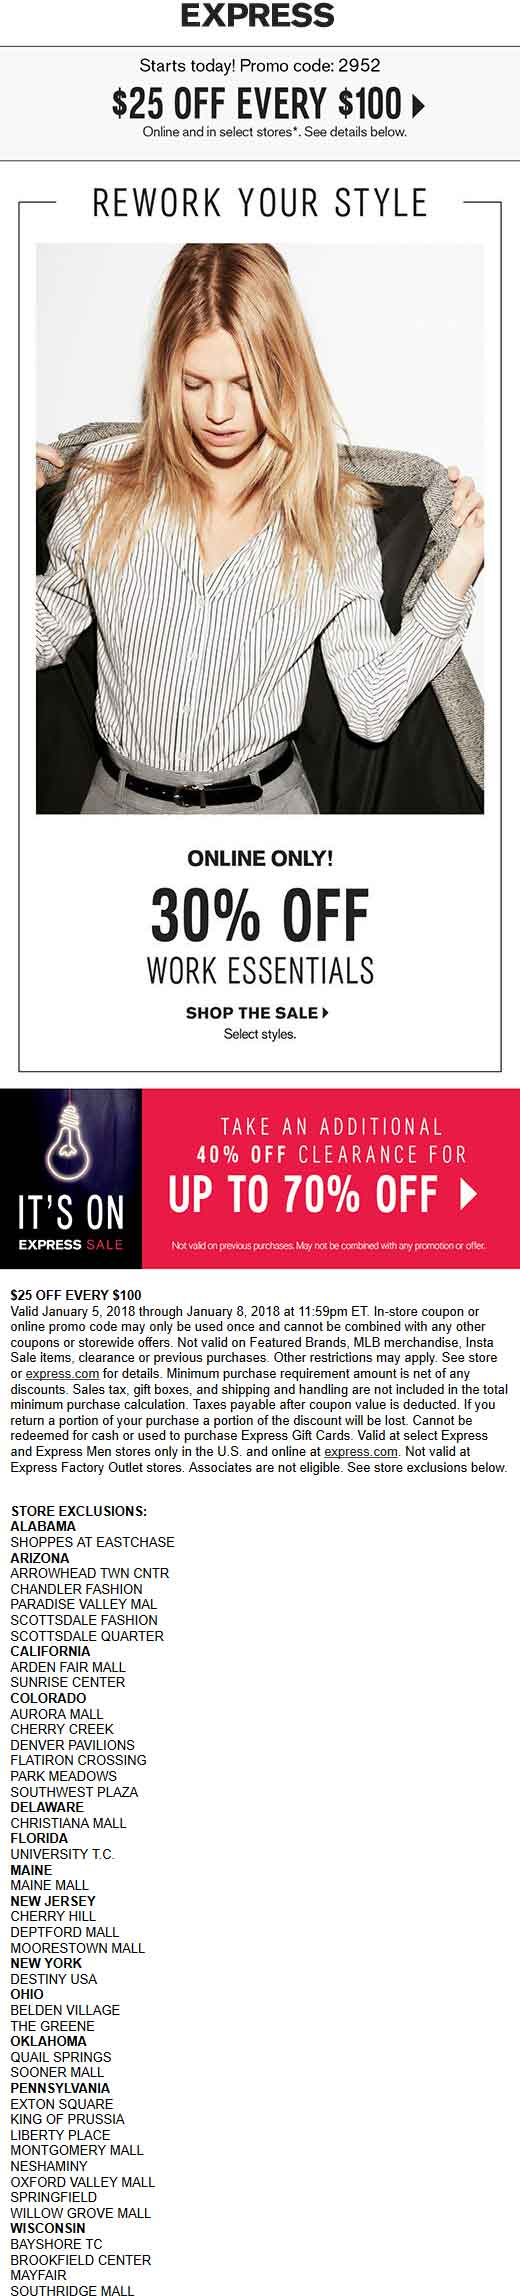 Express.com Promo Coupon $25 off every $100 at Express, or online via promo code 2952